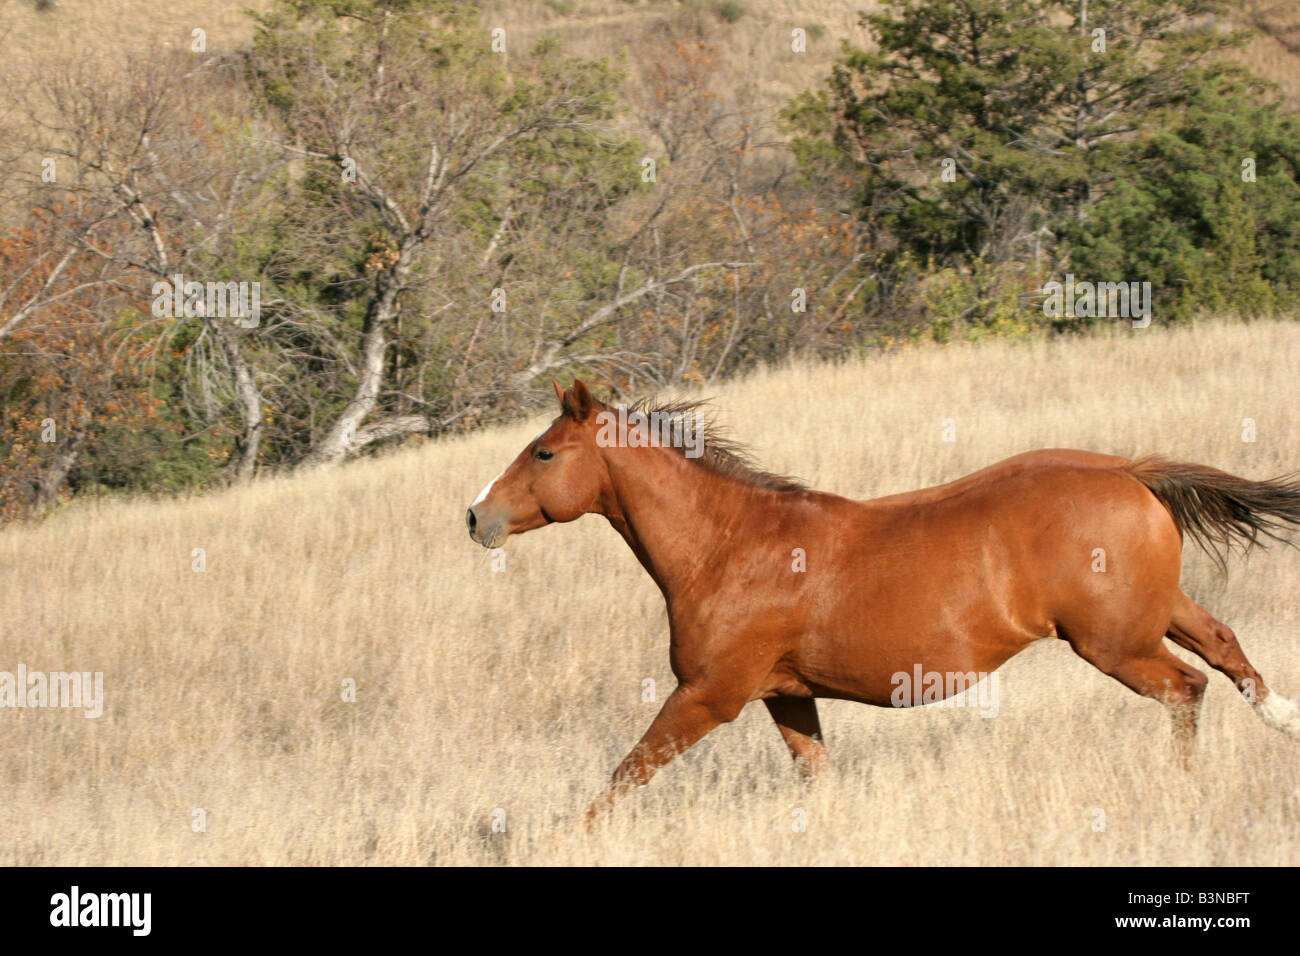 Indian Horse High Resolution Stock Photography And Images Alamy